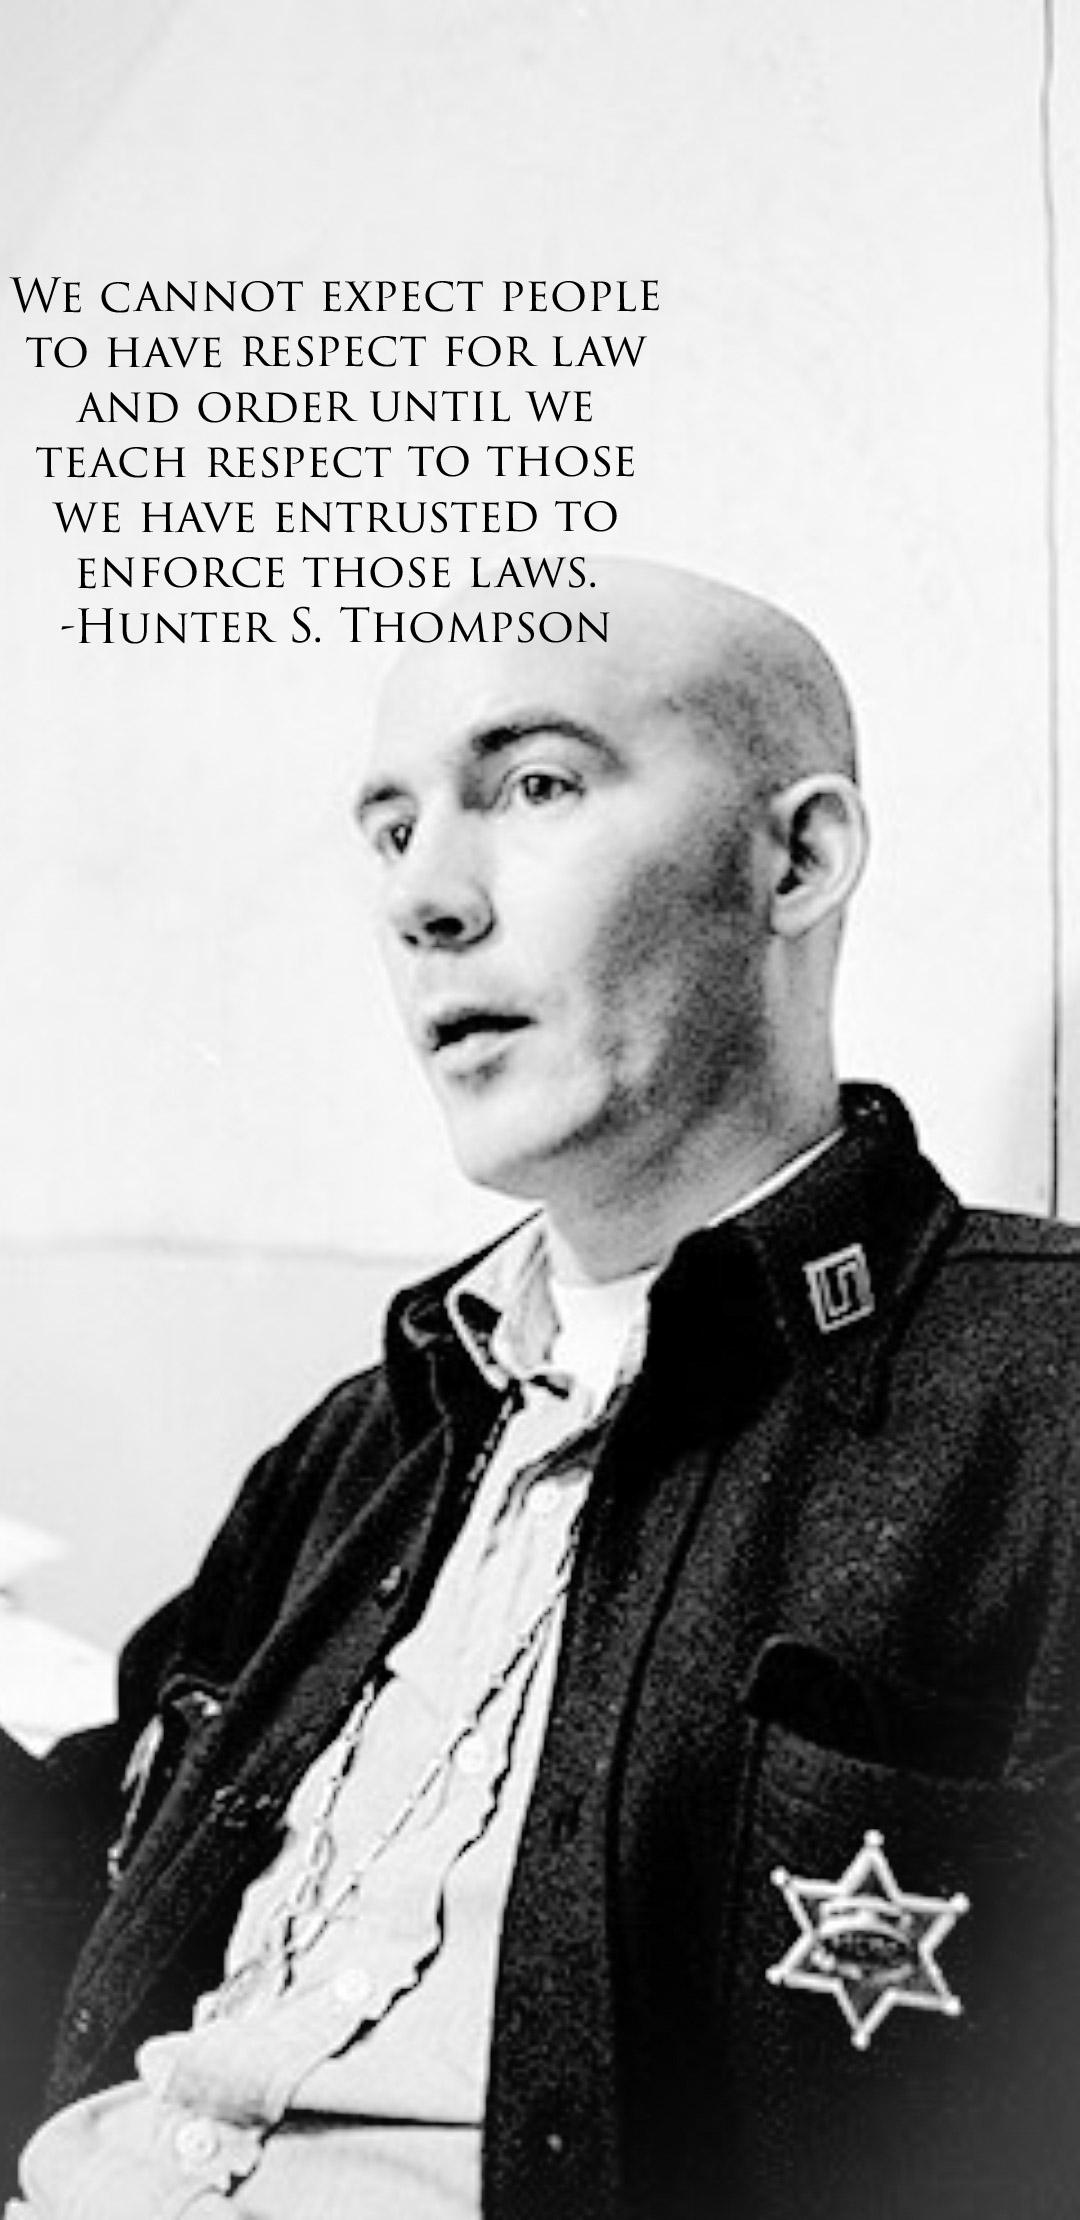 """We cannot expect people to have respect for law and order until we teach respect to those we have entrusted to enforce those laws."" – Hunter S. Thompson 1080×2220"